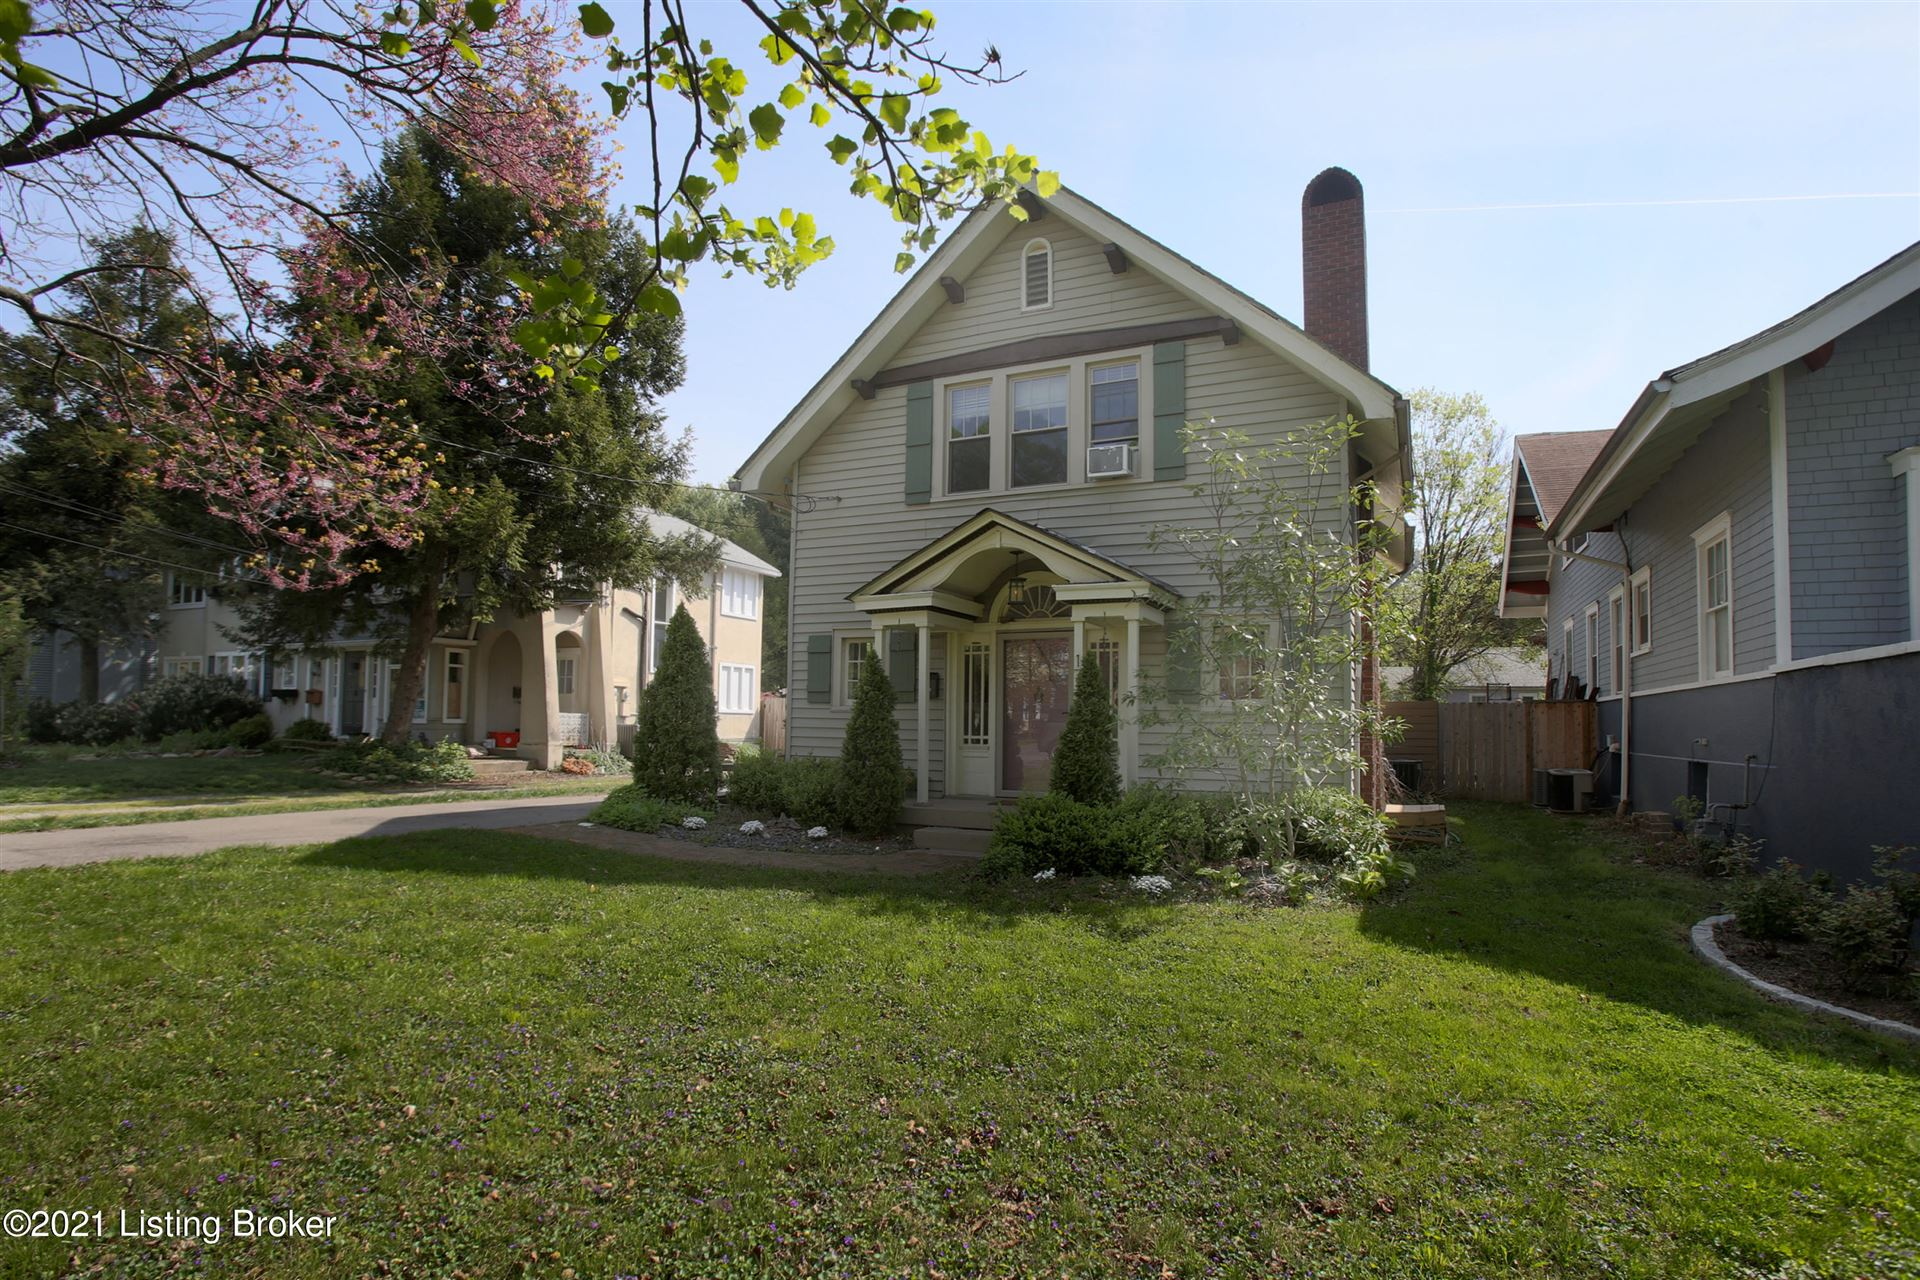 Photo for 173 N Peterson Ave, Louisville, KY 40206 (MLS # 1587068)